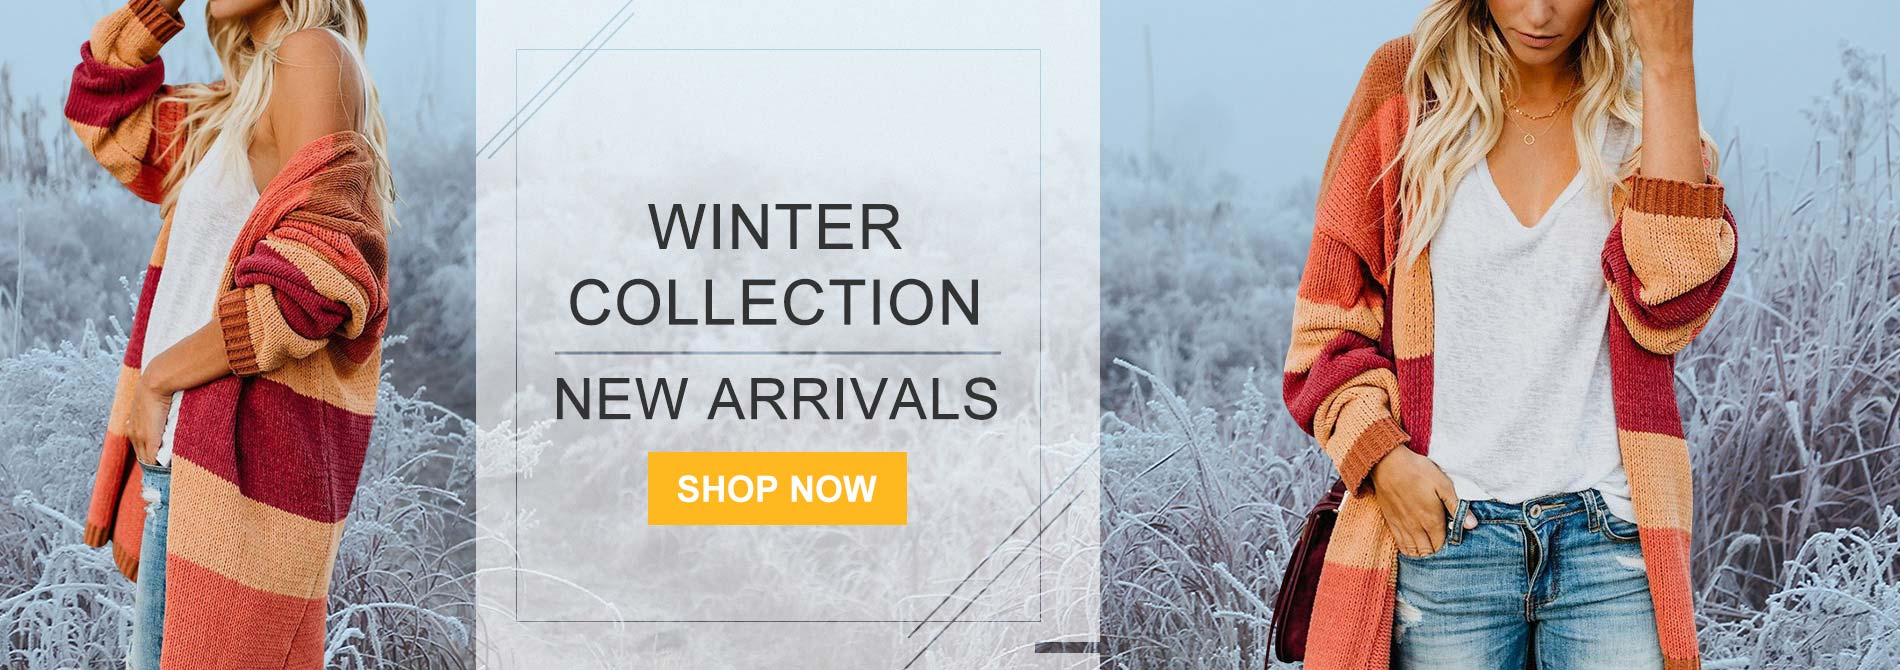 New Arrivals For Winter